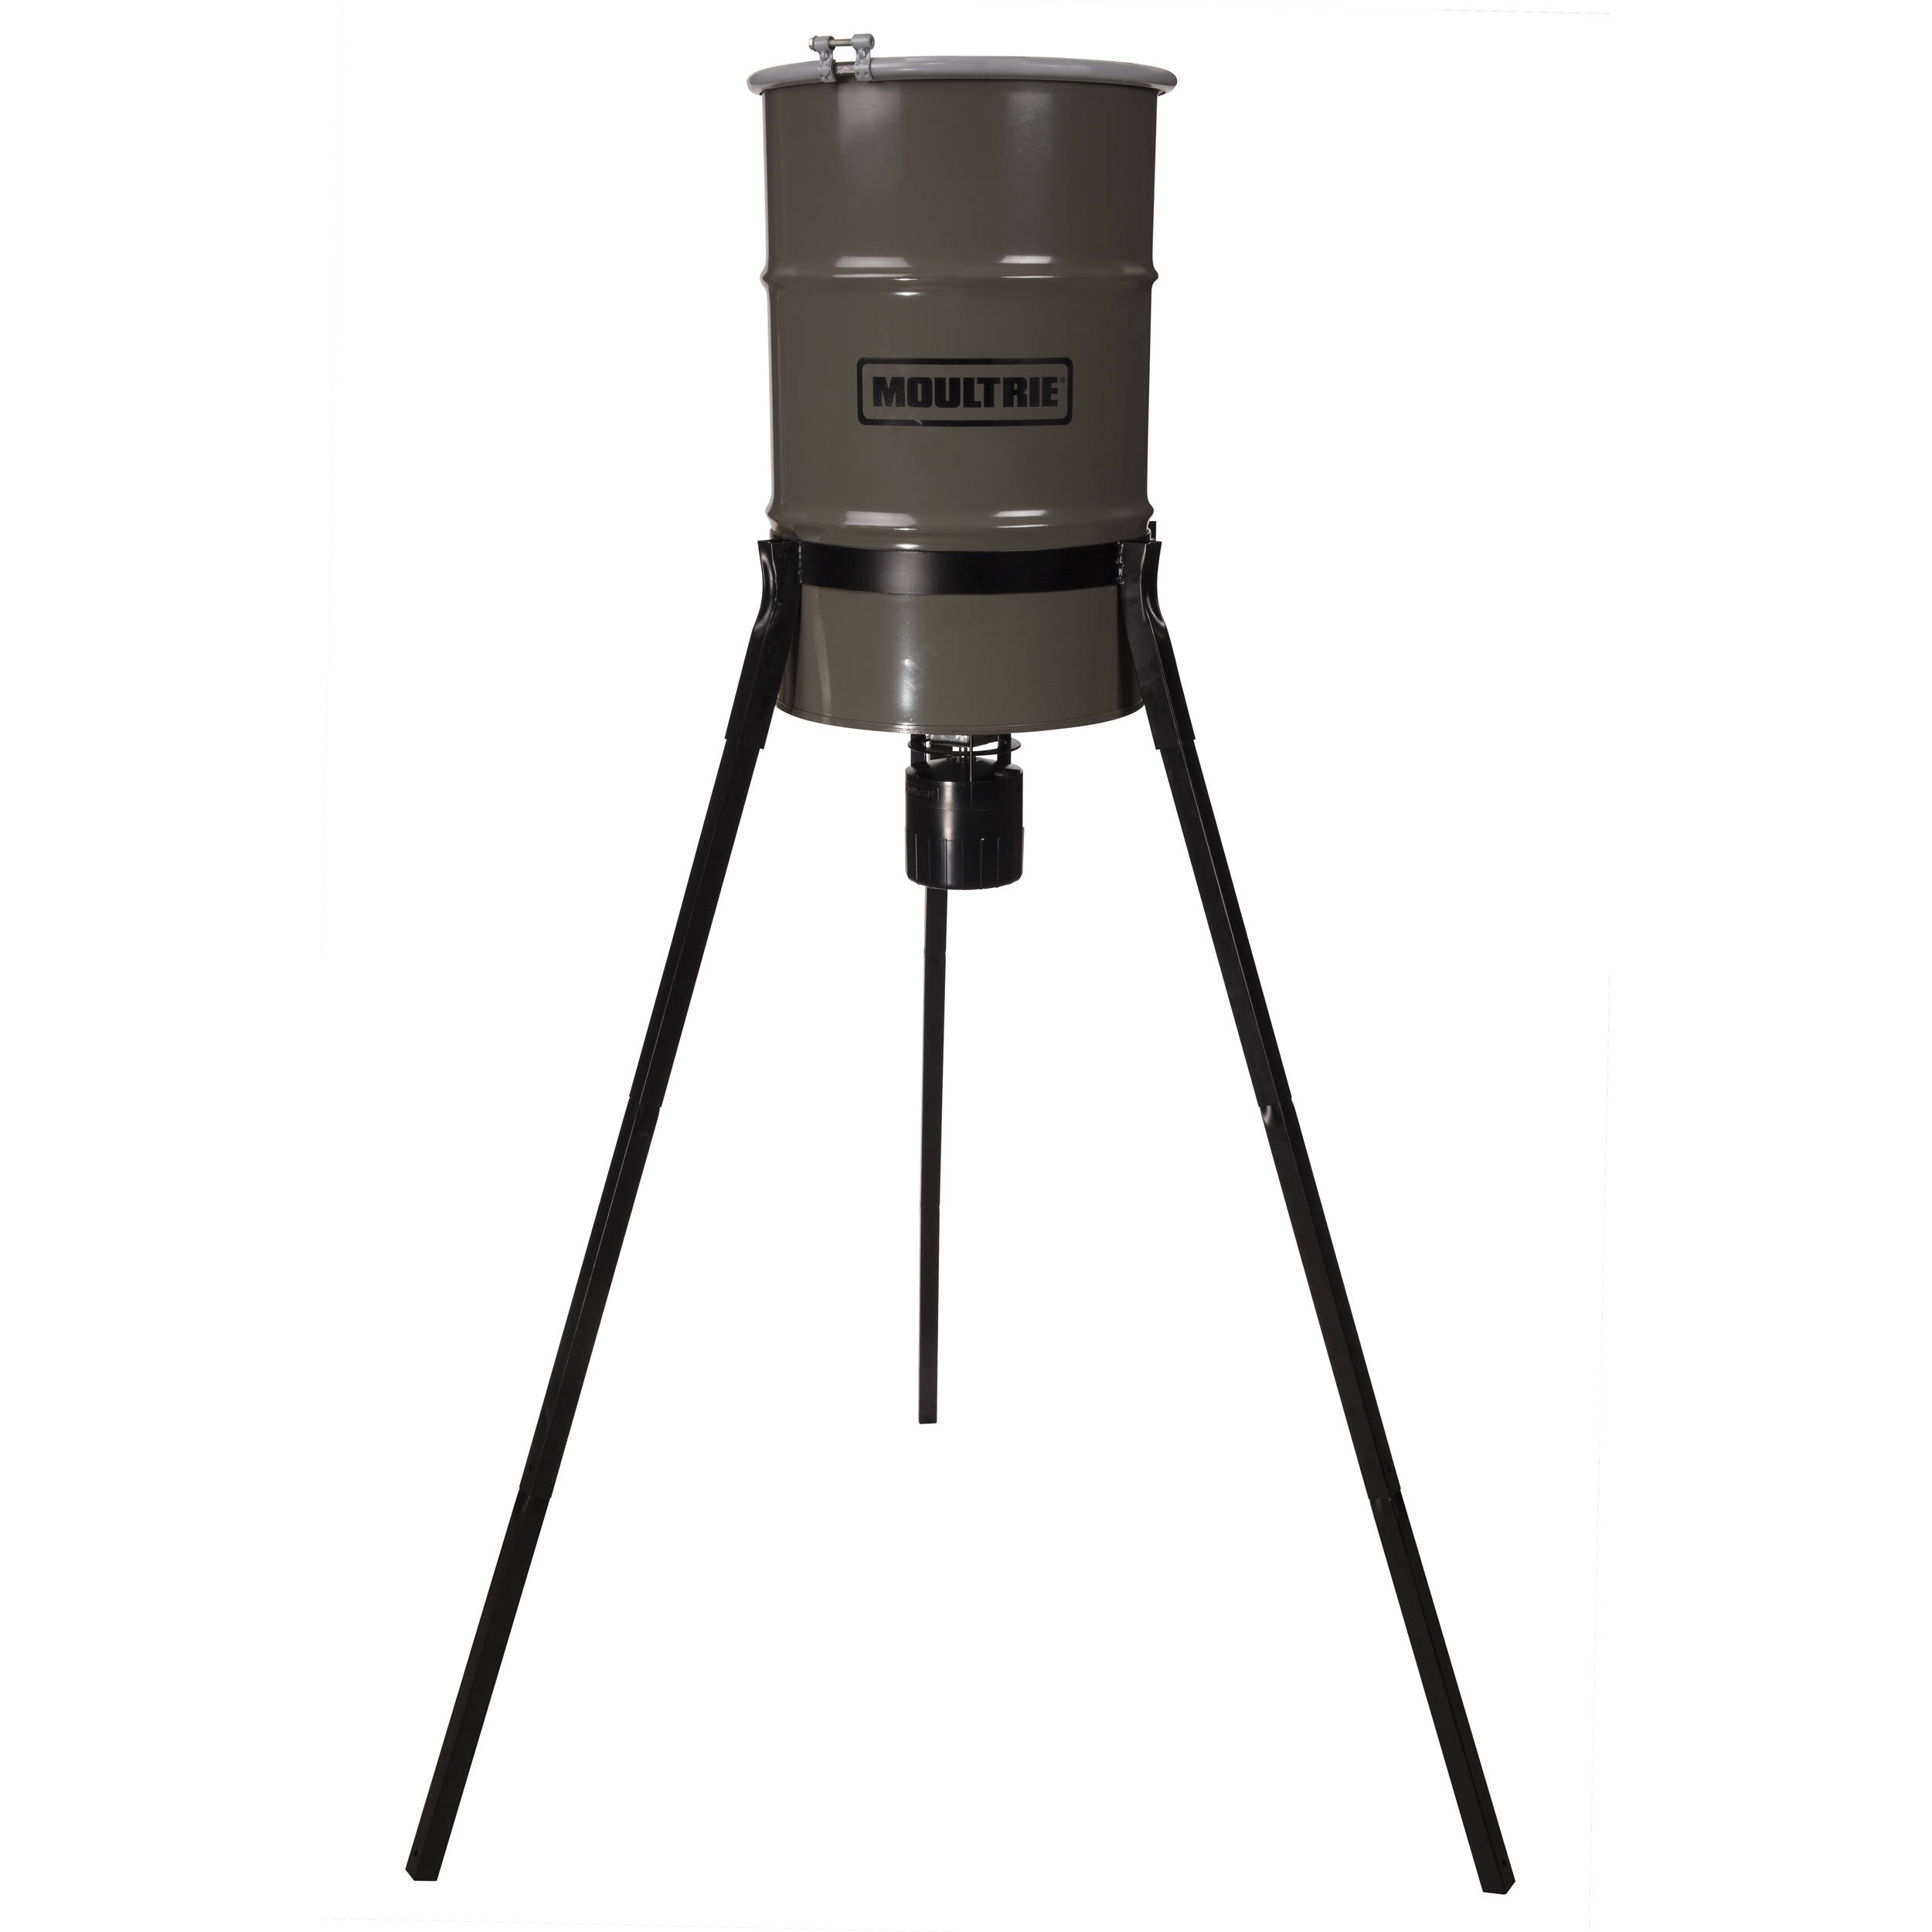 tripod deer youtube moultrie new feeder watch